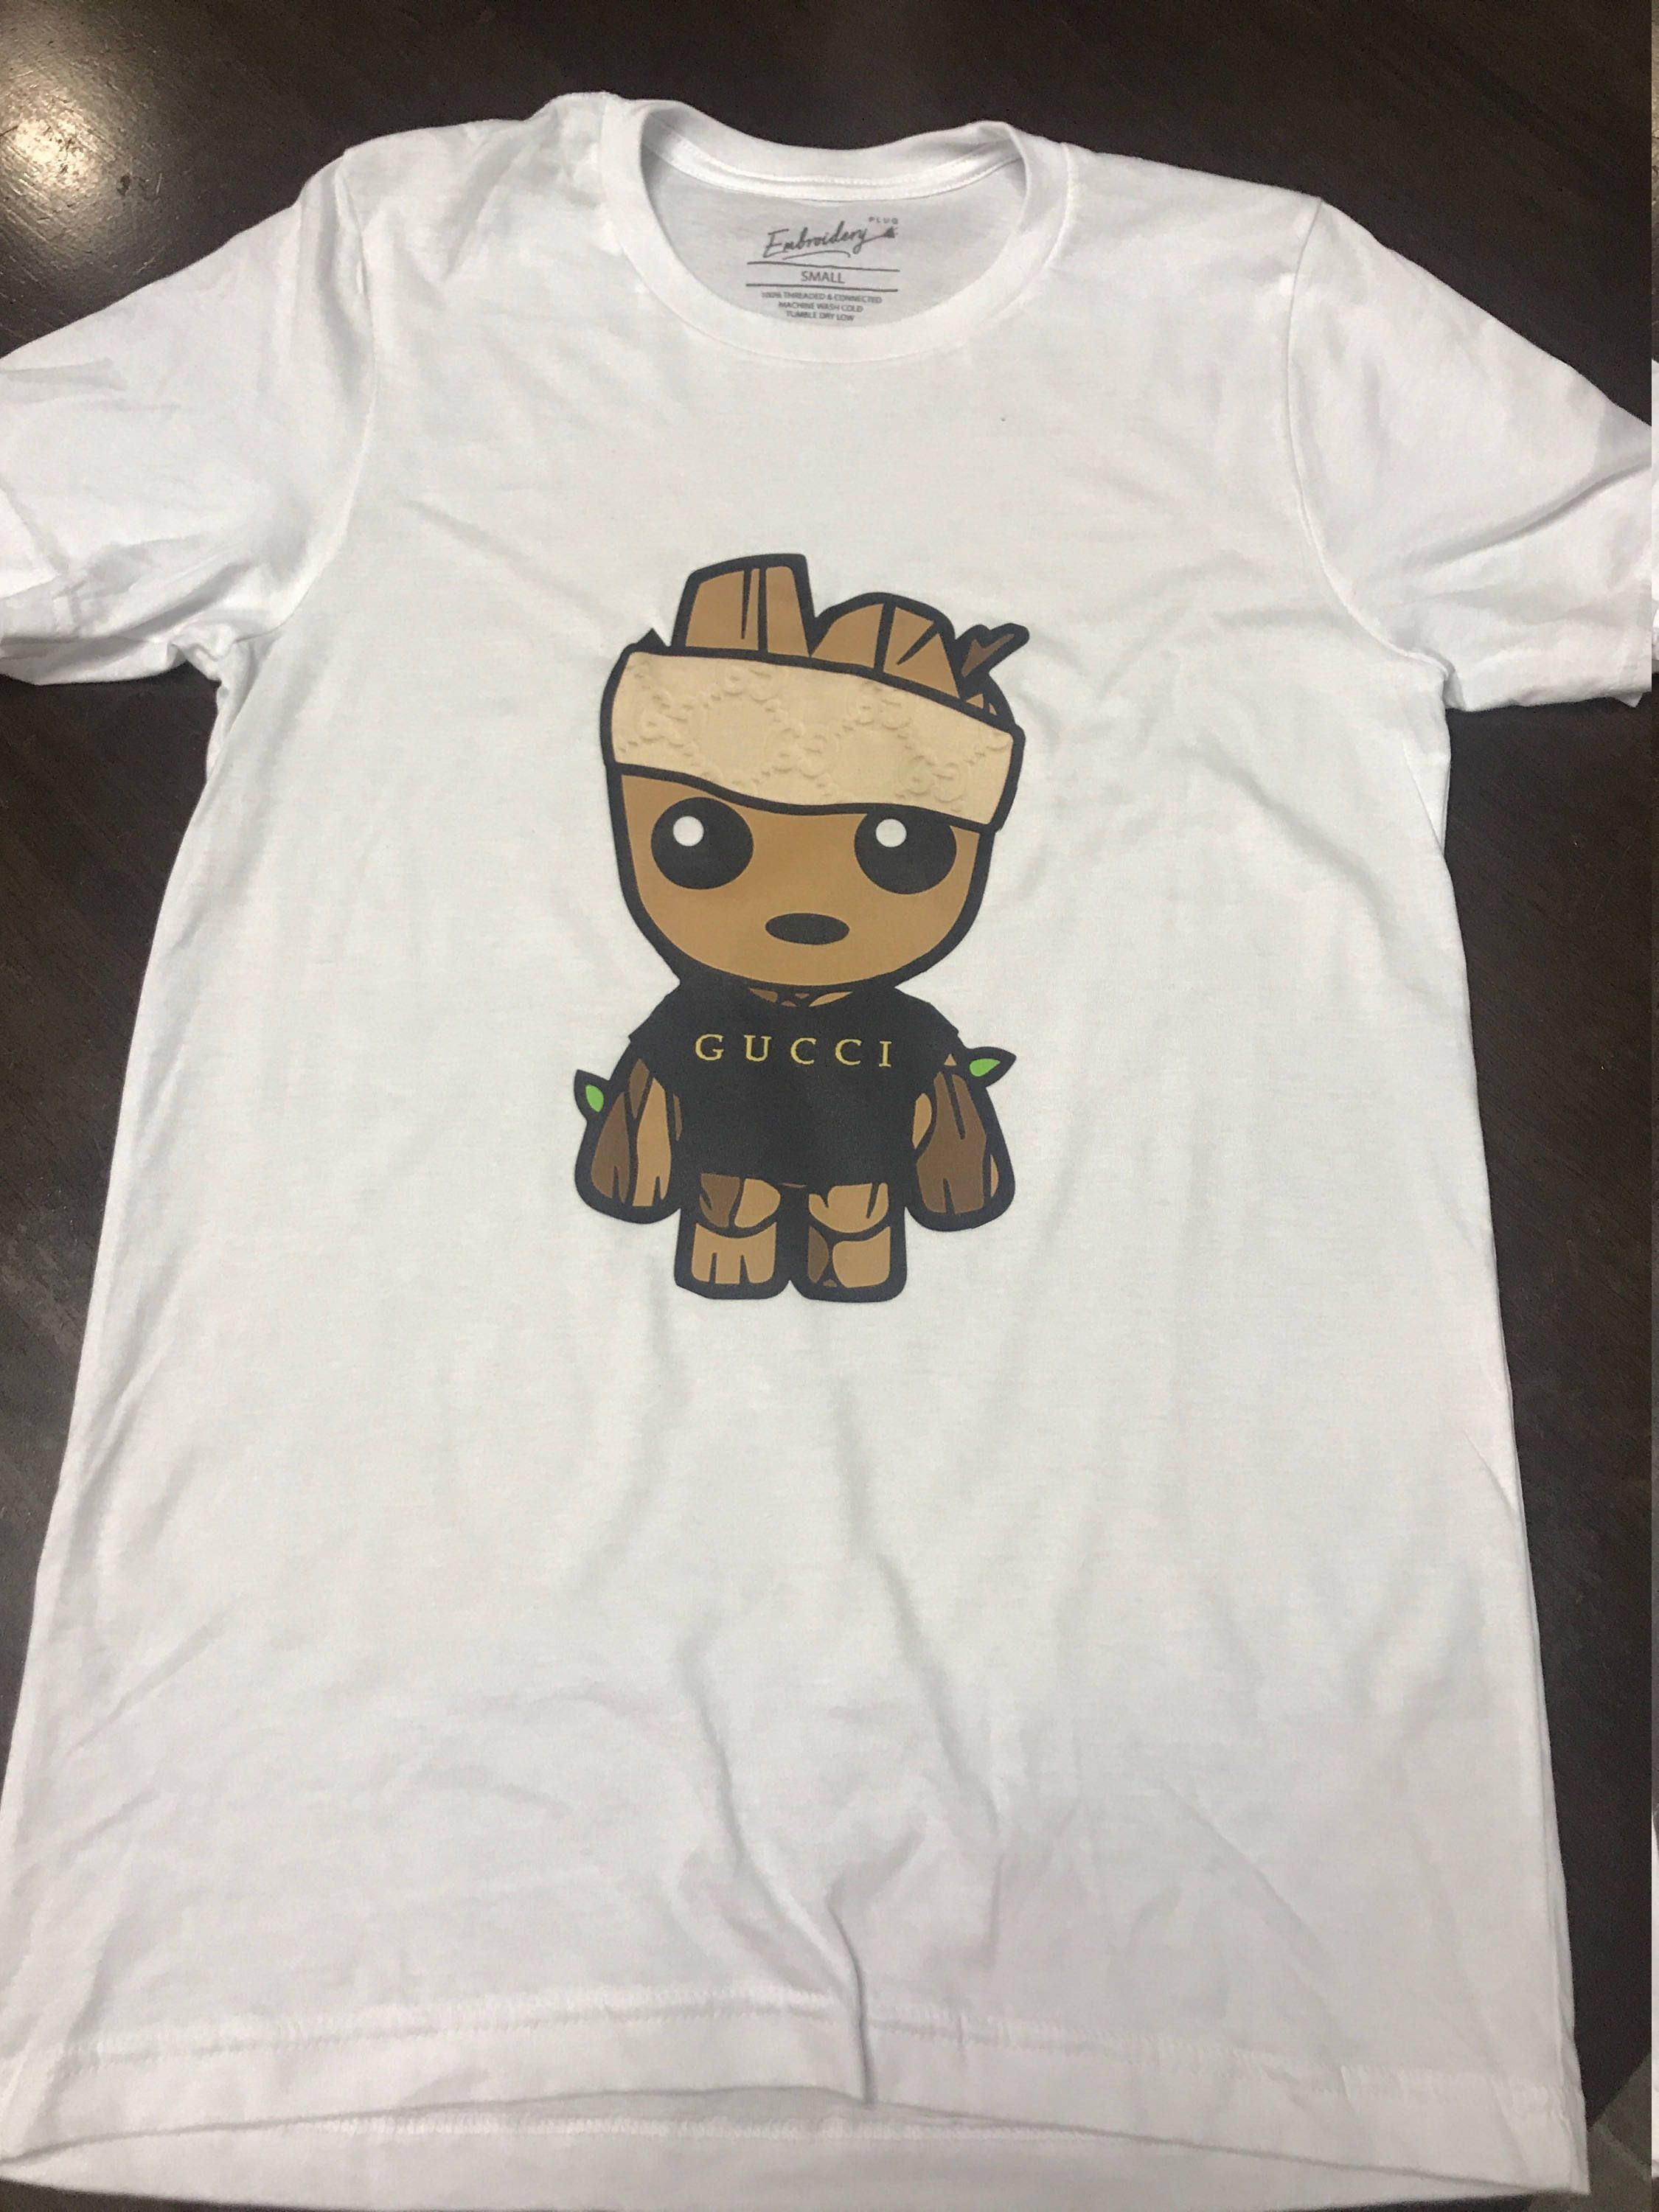 2fe69e85d77e83 Baby Groot Gucci Shirt   Baby Groot Gucci Tee   Baby Groot T-Shirt by  HarterDesignimages on Etsy